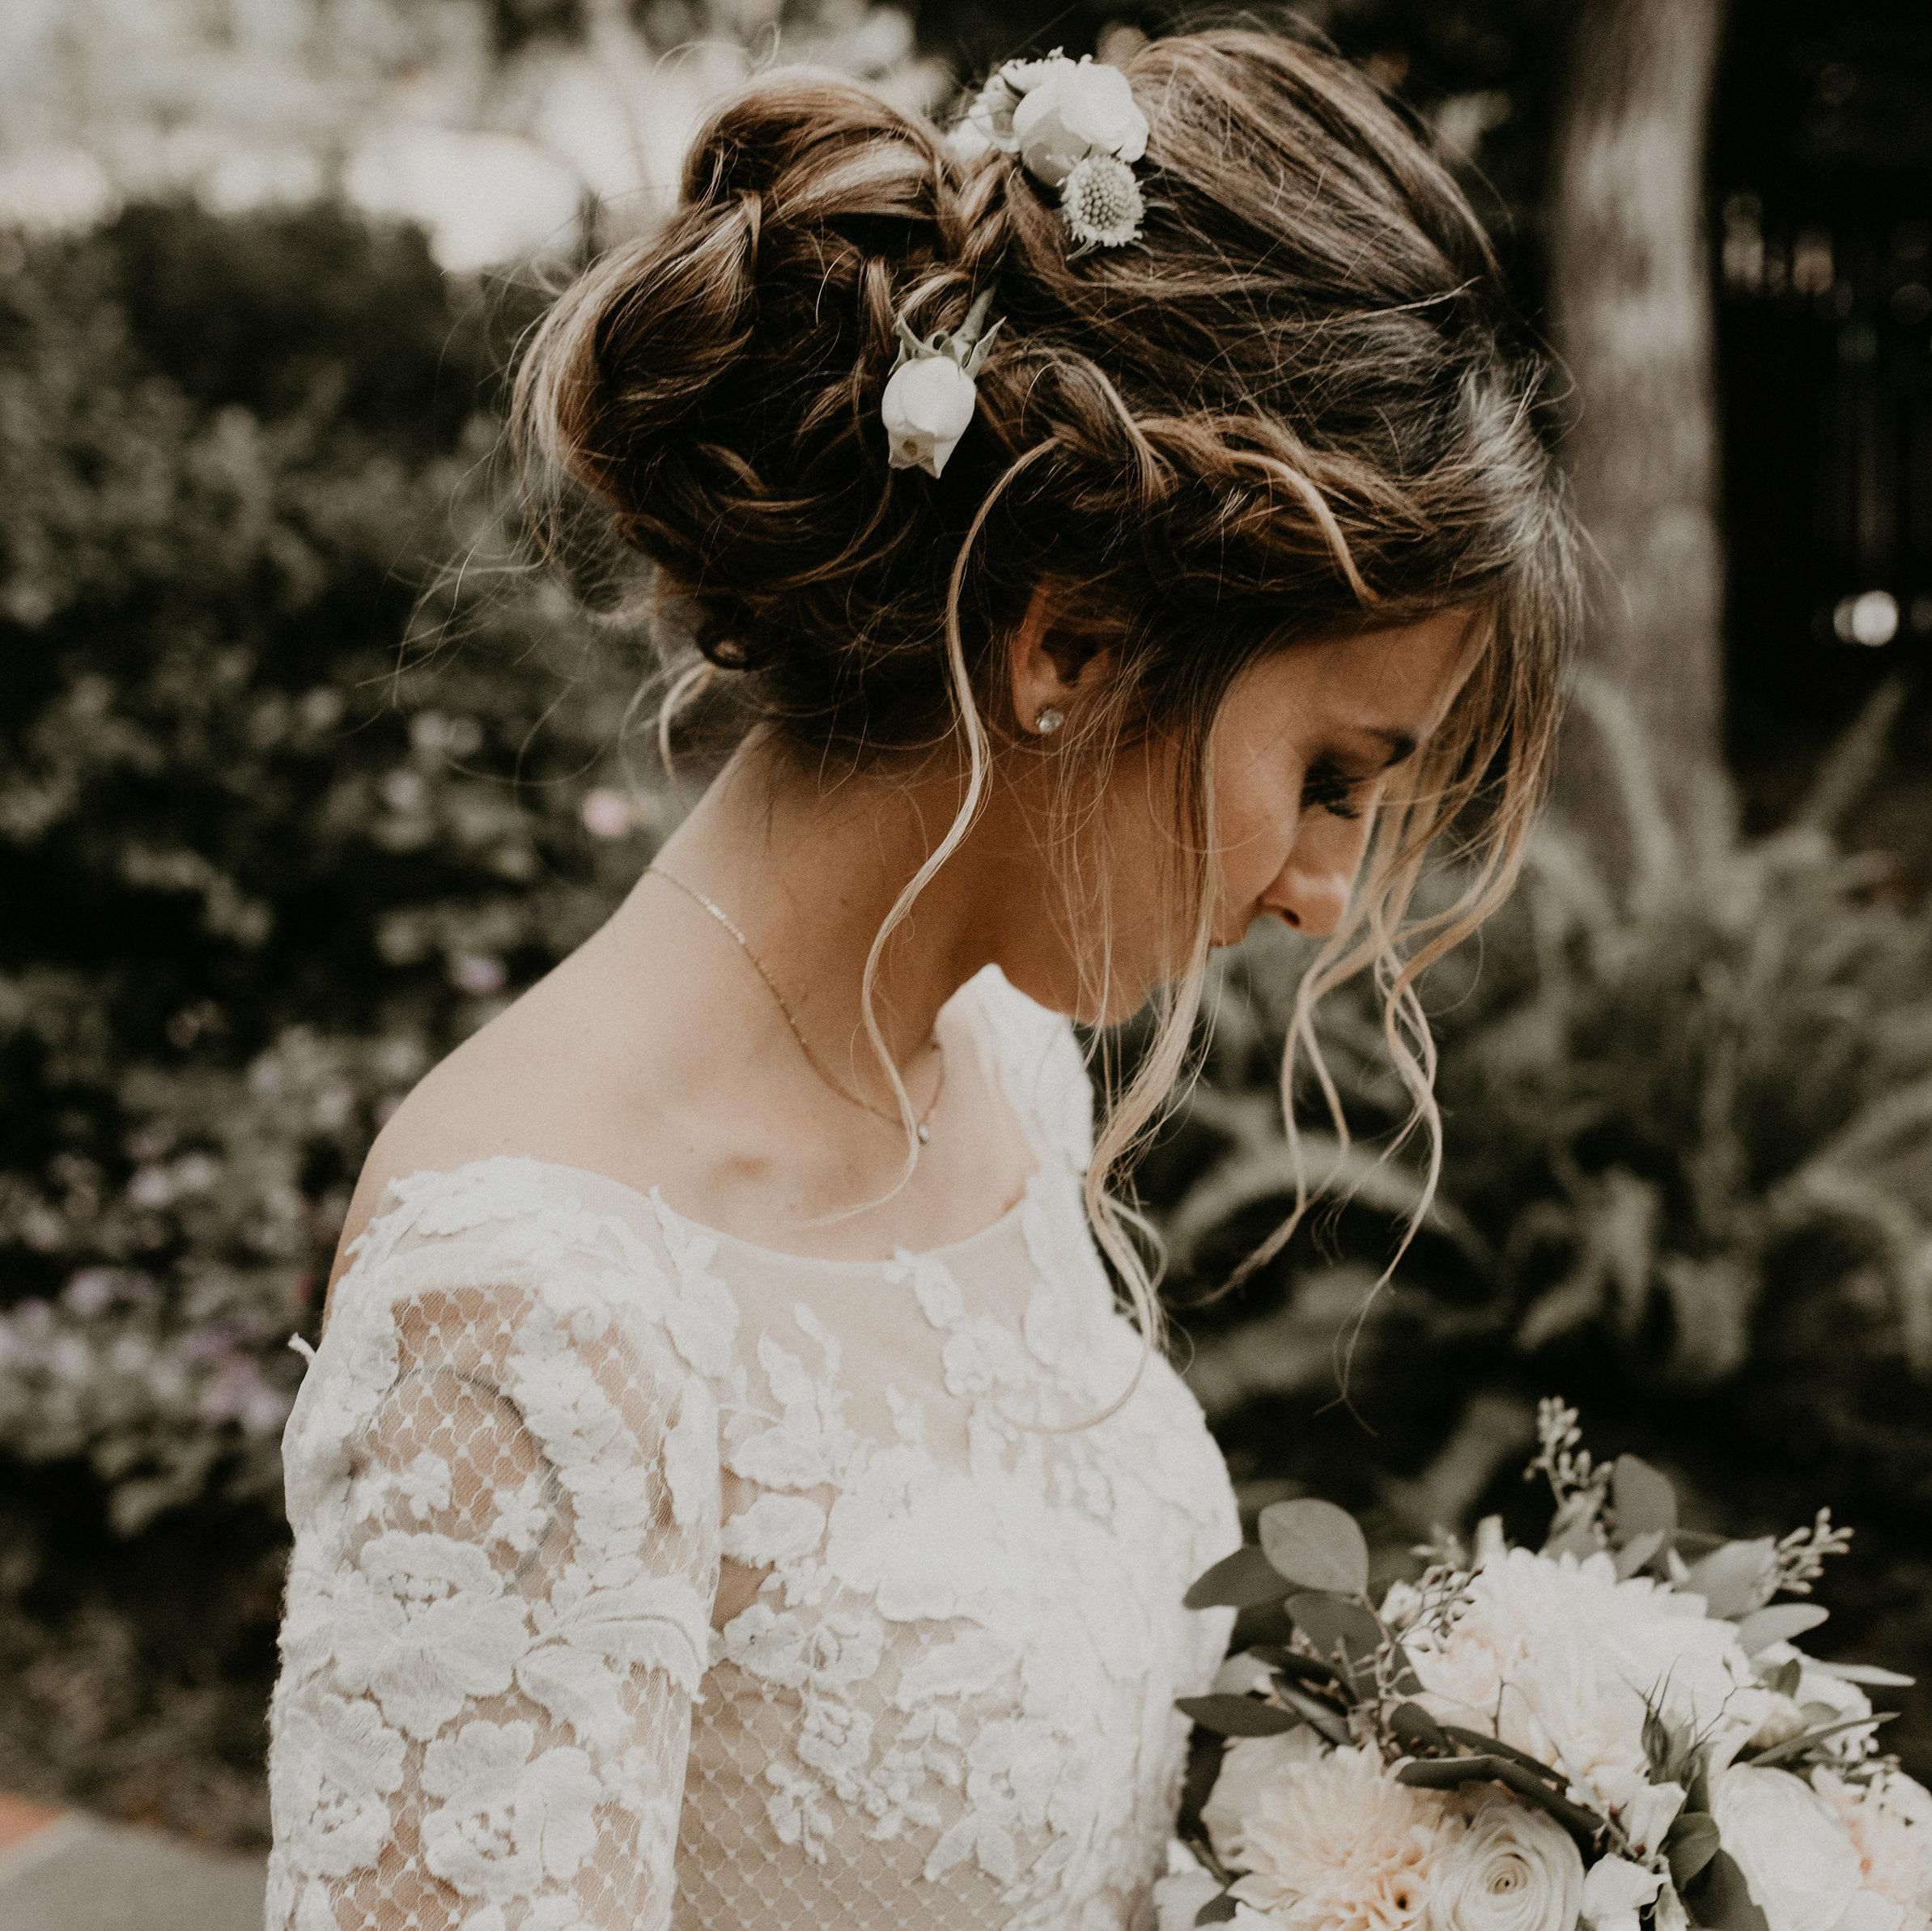 34 Perfectly Imperfect Bridal Updos